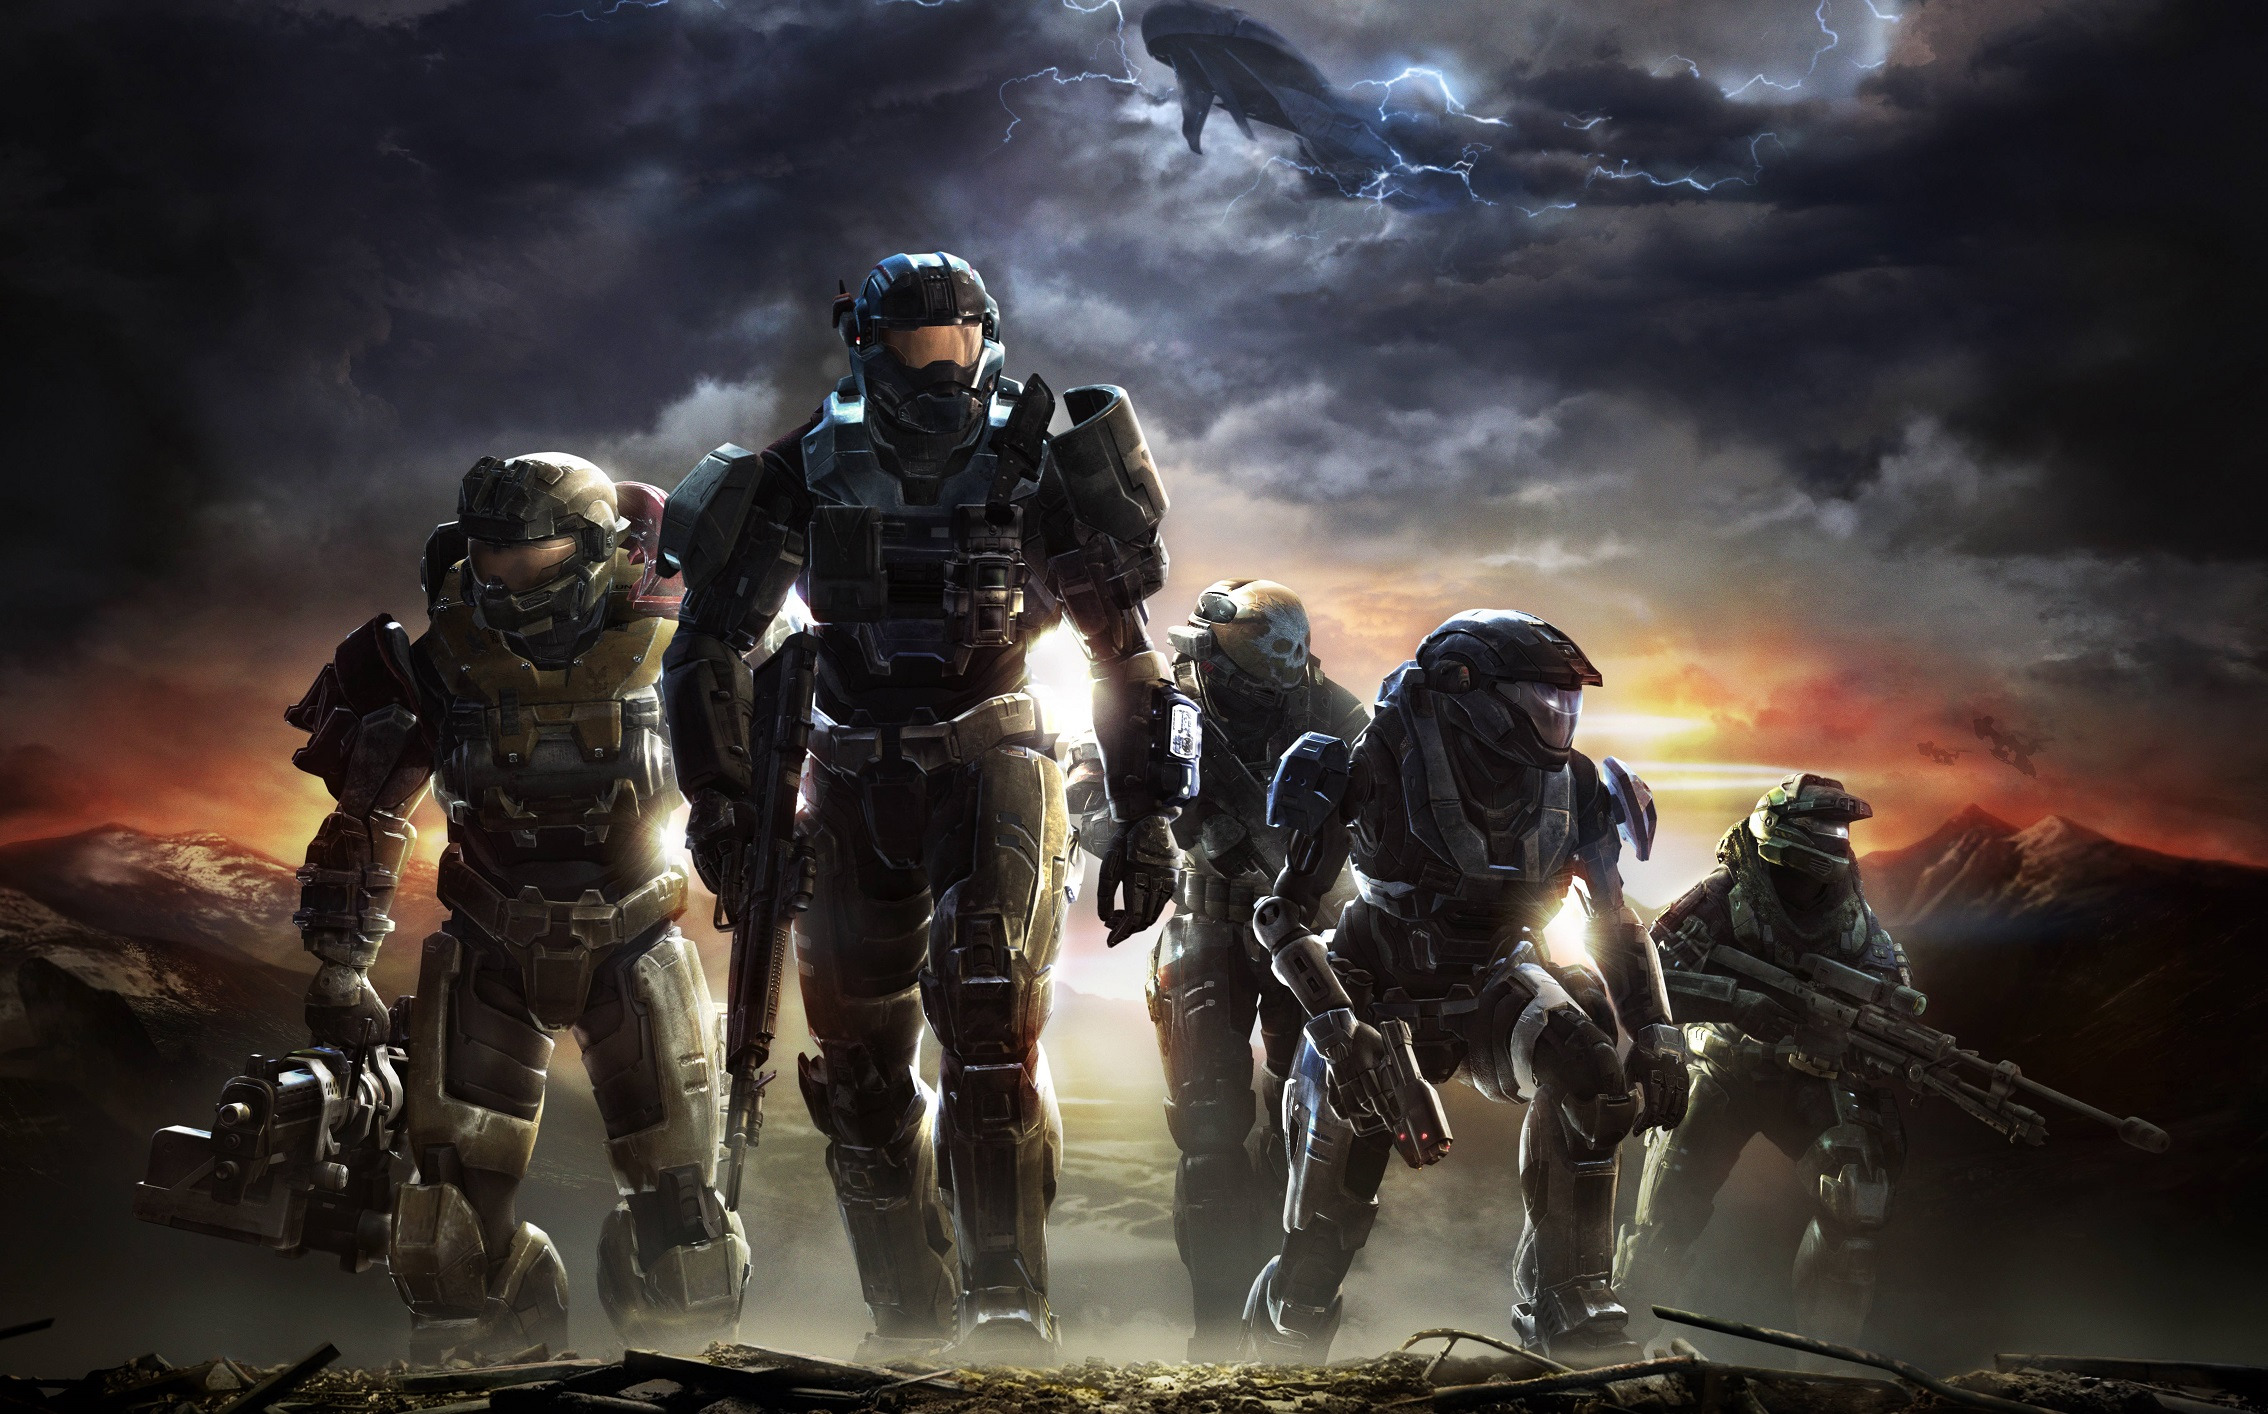 Master chief with hot girl